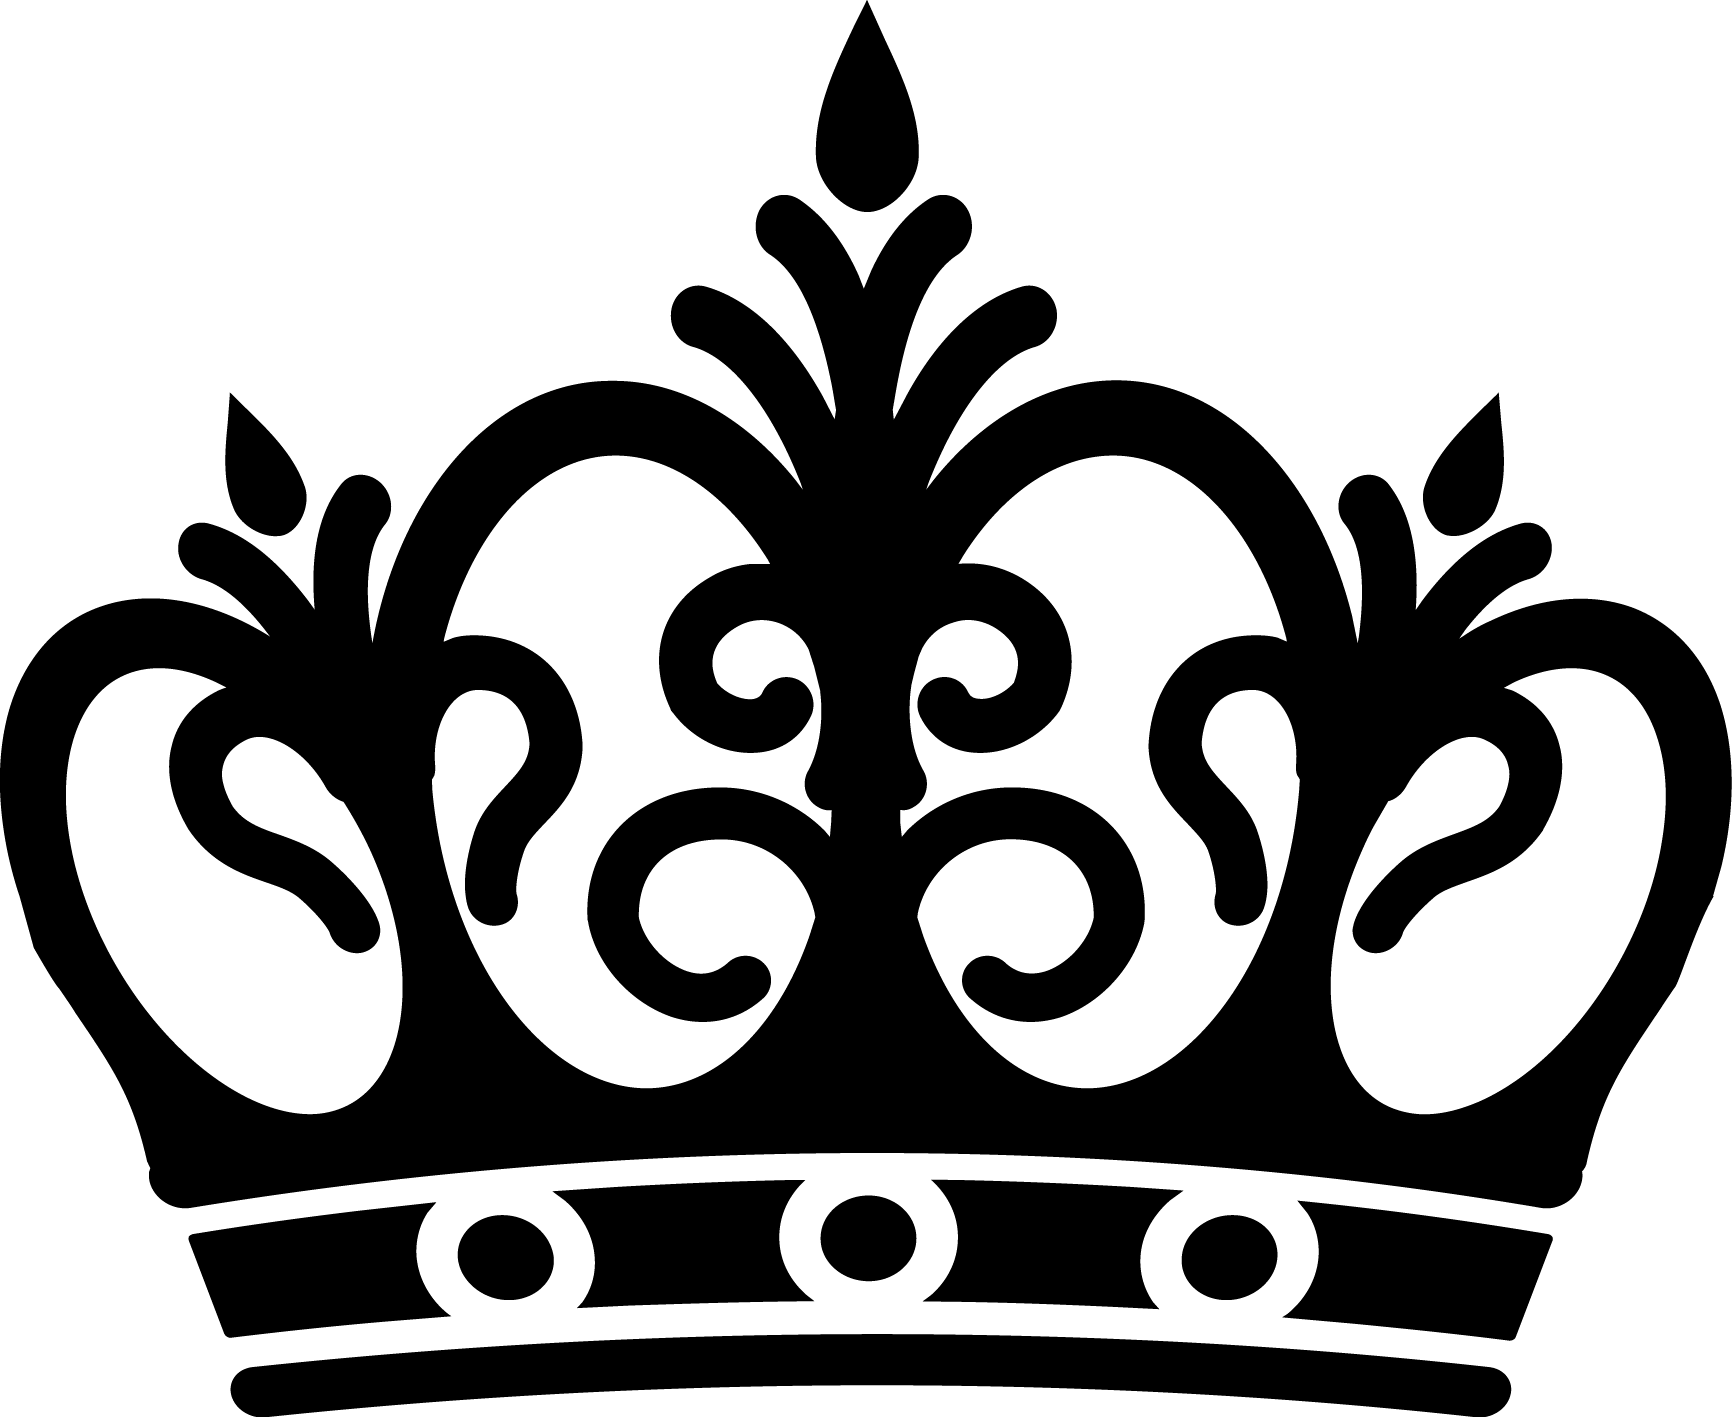 Crown outlione clipart. Vector png buscar con